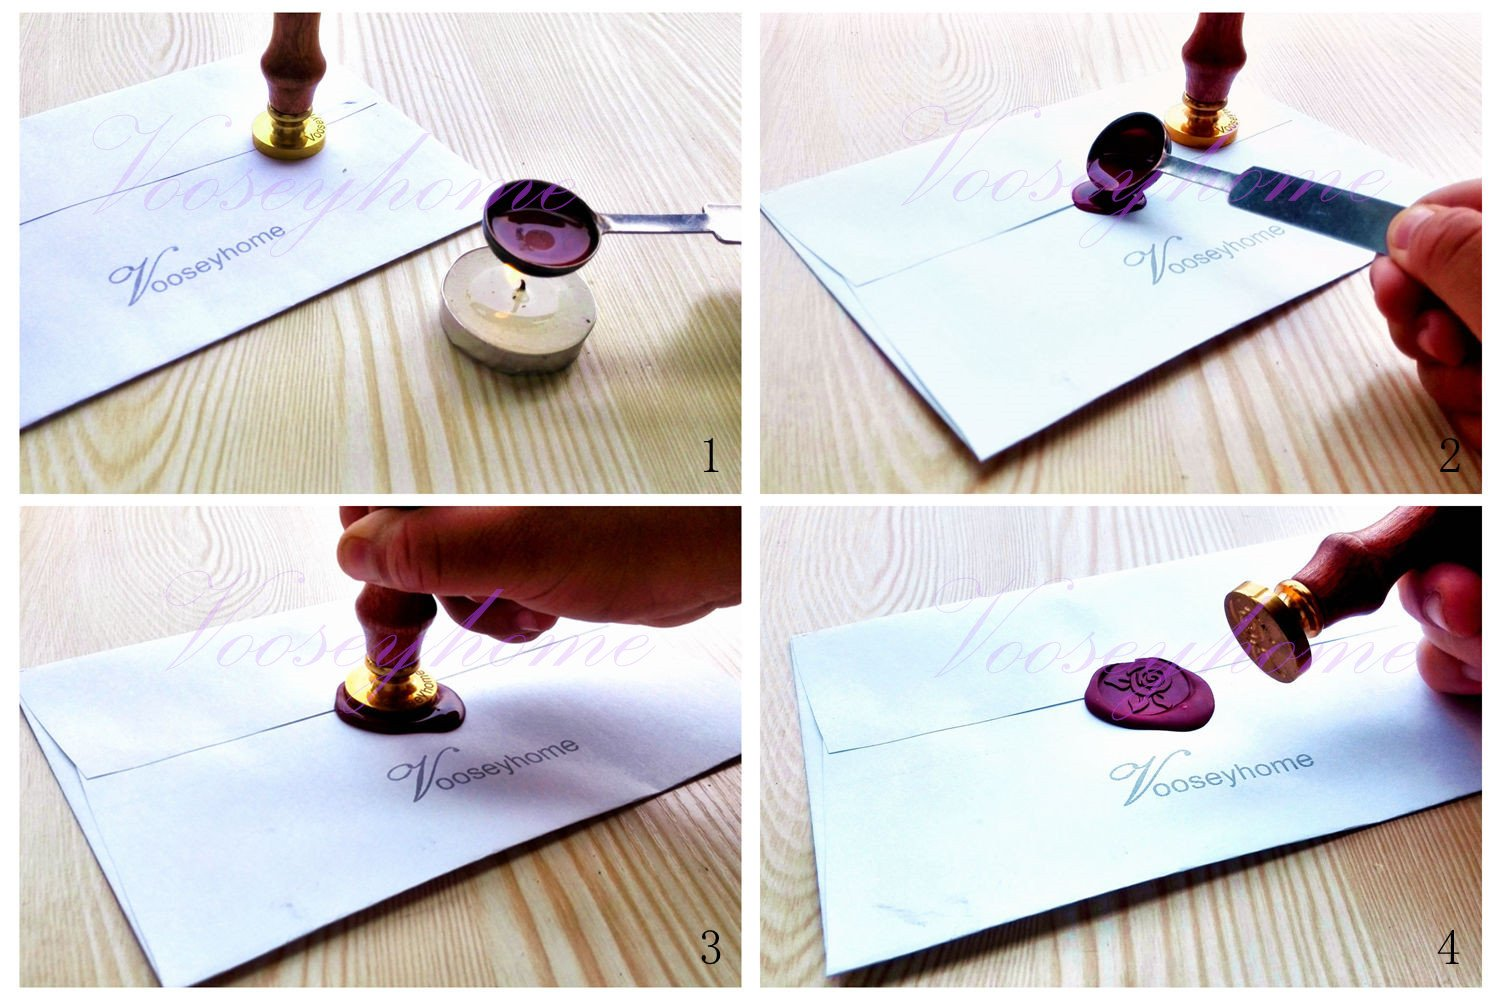 Vooseyhome The Cute Owl Wax Seal Stamp with Rosewood Handle - Ideal for Decorating Gift Packing, Envelopes, Parcels, Cards, Letters, Invitations, Signature and Everything You Like! by VOOSEYHOME (Image #6)